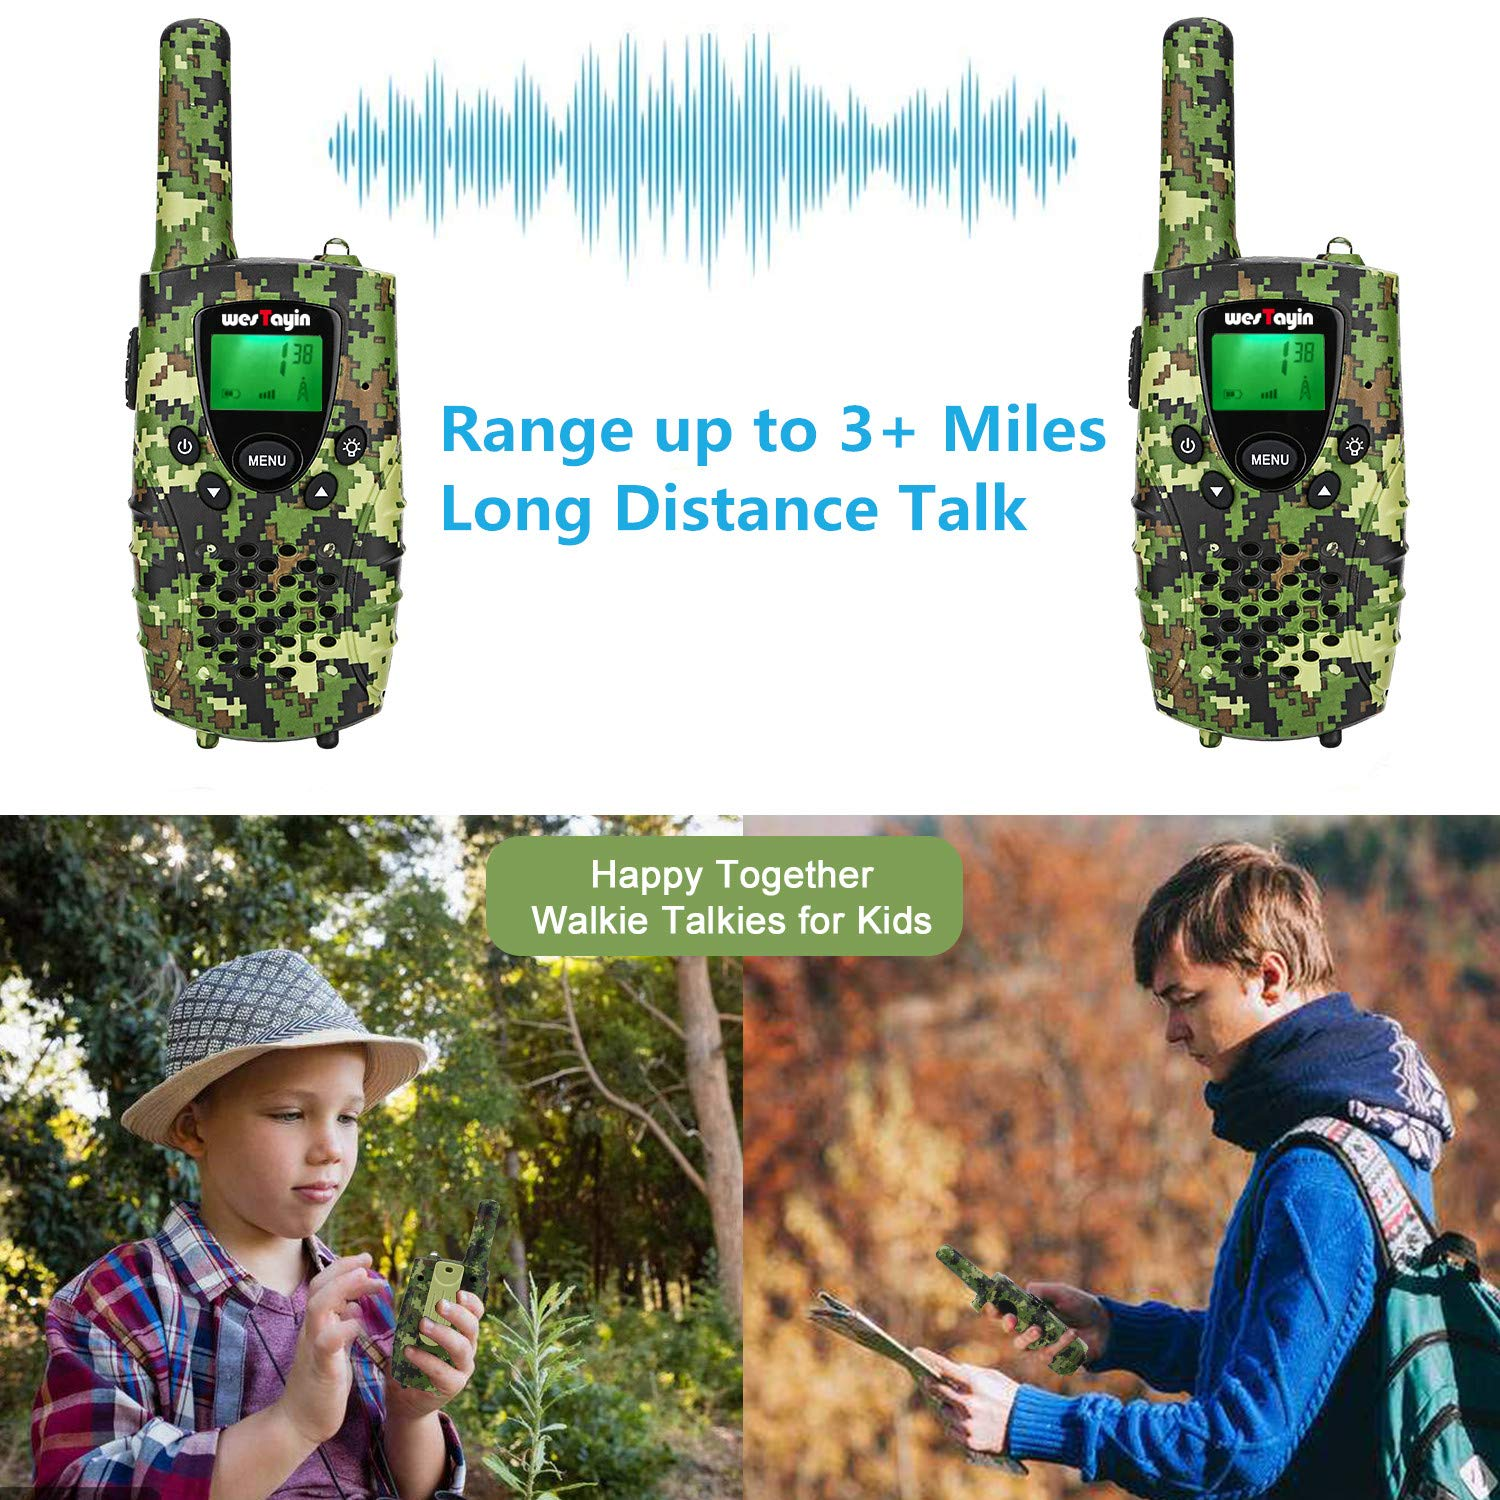 WES TAYIN Rechargeable Walkie Talkies for Kids, 4 Miles Kids Walkie Talkies with VOX Hands Free and LED Flashlight, Power Saving Two Way Radios Toys, Holiday Birthday for Kids by WES TAYIN (Image #7)